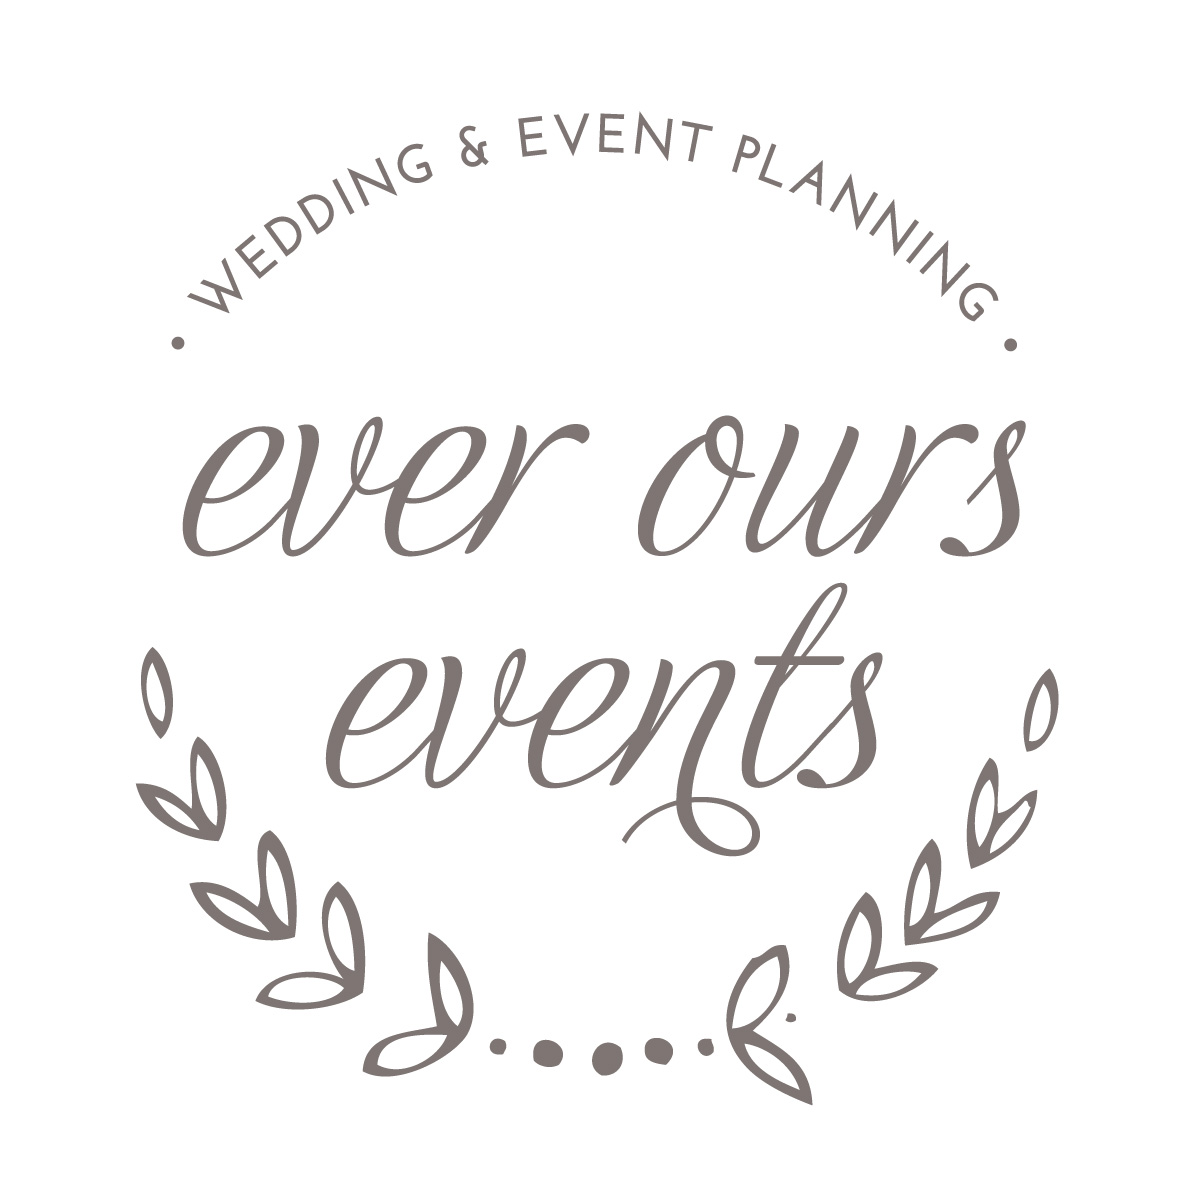 Ever Ours Events Hello World